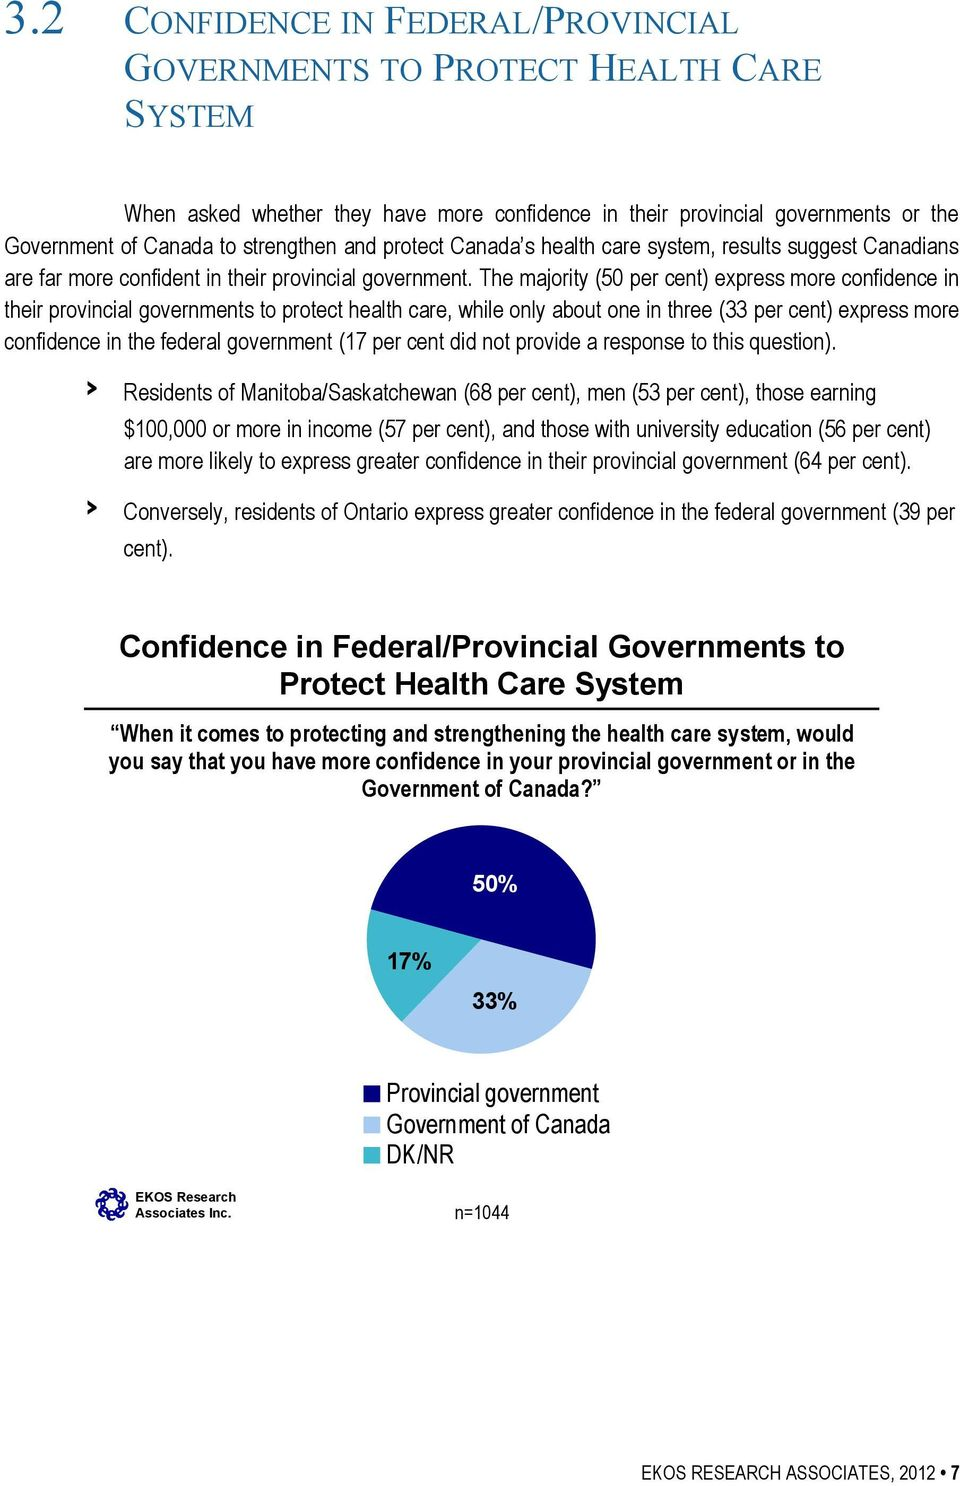 The majority (50 per cent) express more confidence in their provincial governments to protect health care, while only about one in three (33 per cent) express more confidence in the federal